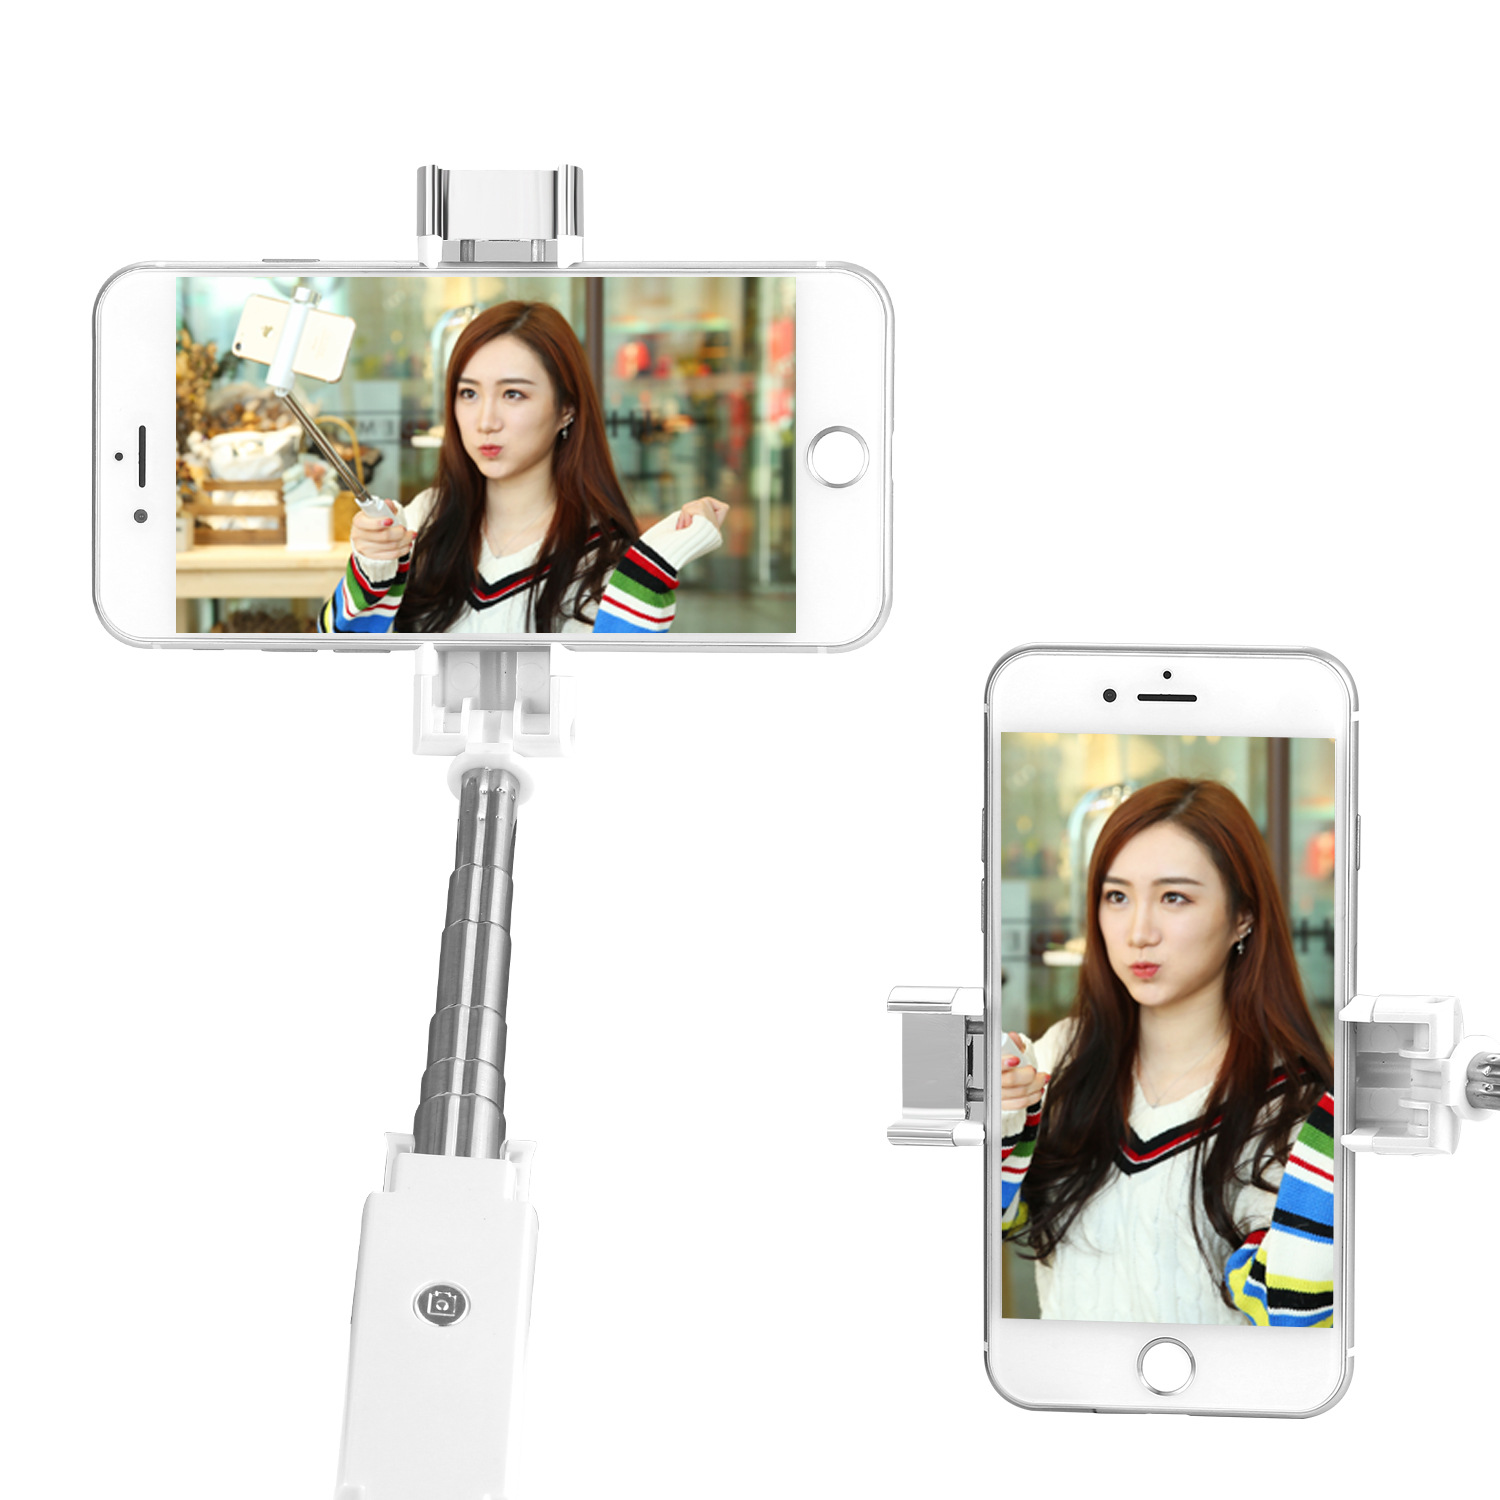 Toko 2018 Updated Generic Version Original Selfie Stick Bluetooth Wireless Self Timer Portable Shutter Bluetooth Remote Shutter Kit For Ios Android Phone Intl Online Tiongkok